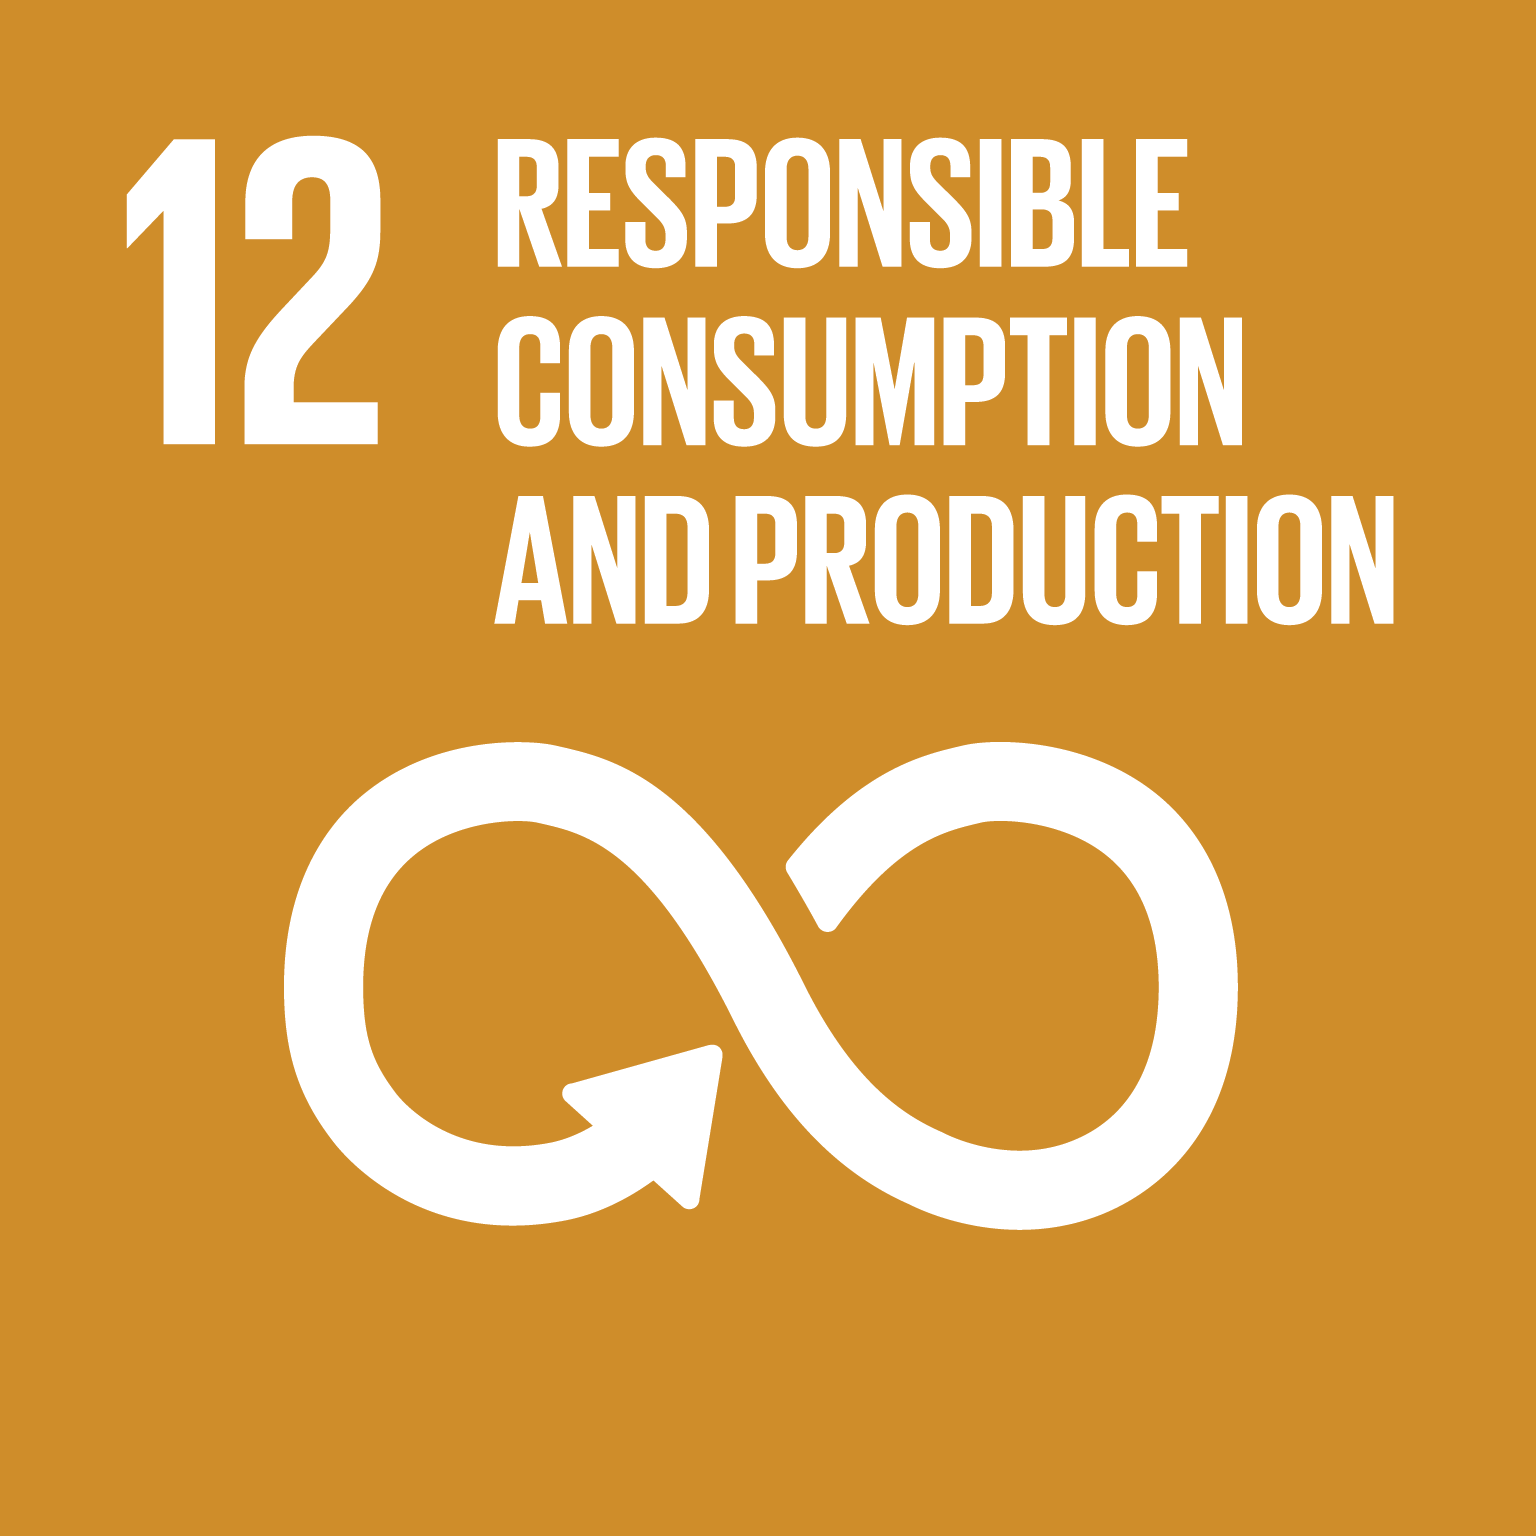 U.N. SDG goal 12, responsible consumption and production